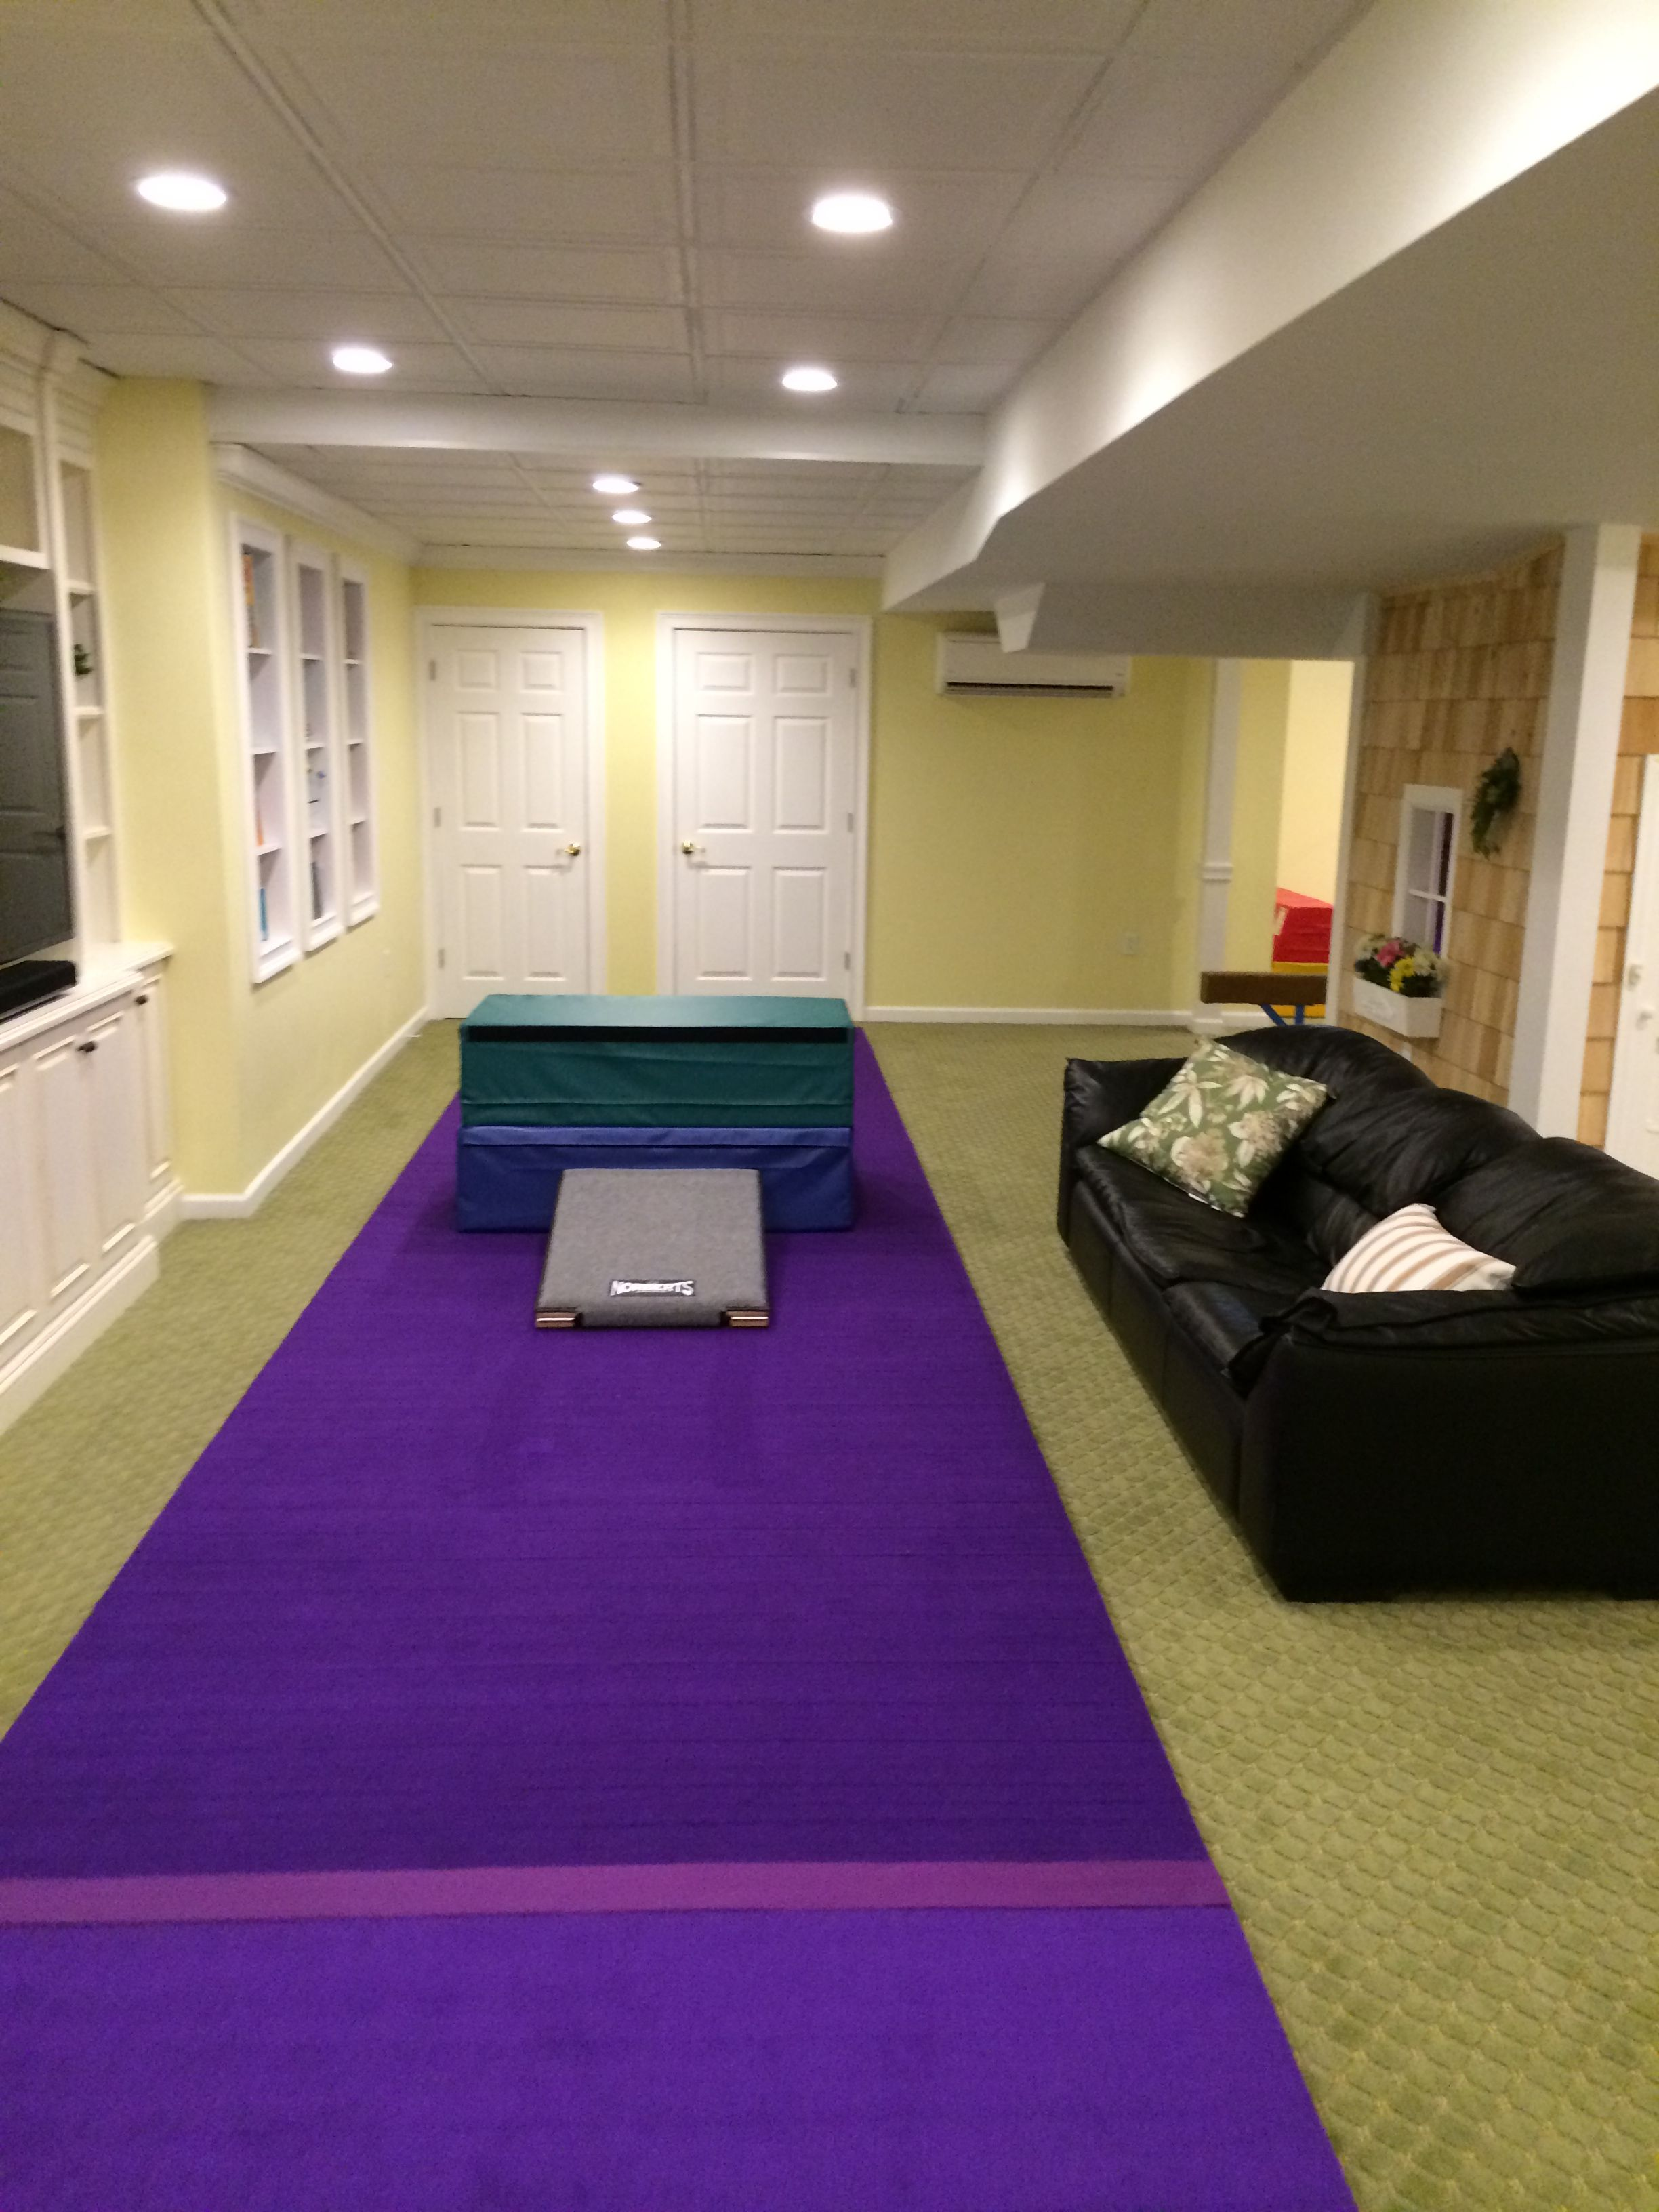 Indoor Gymnastics Area. Also Pinning For Basement Finishing Ideas